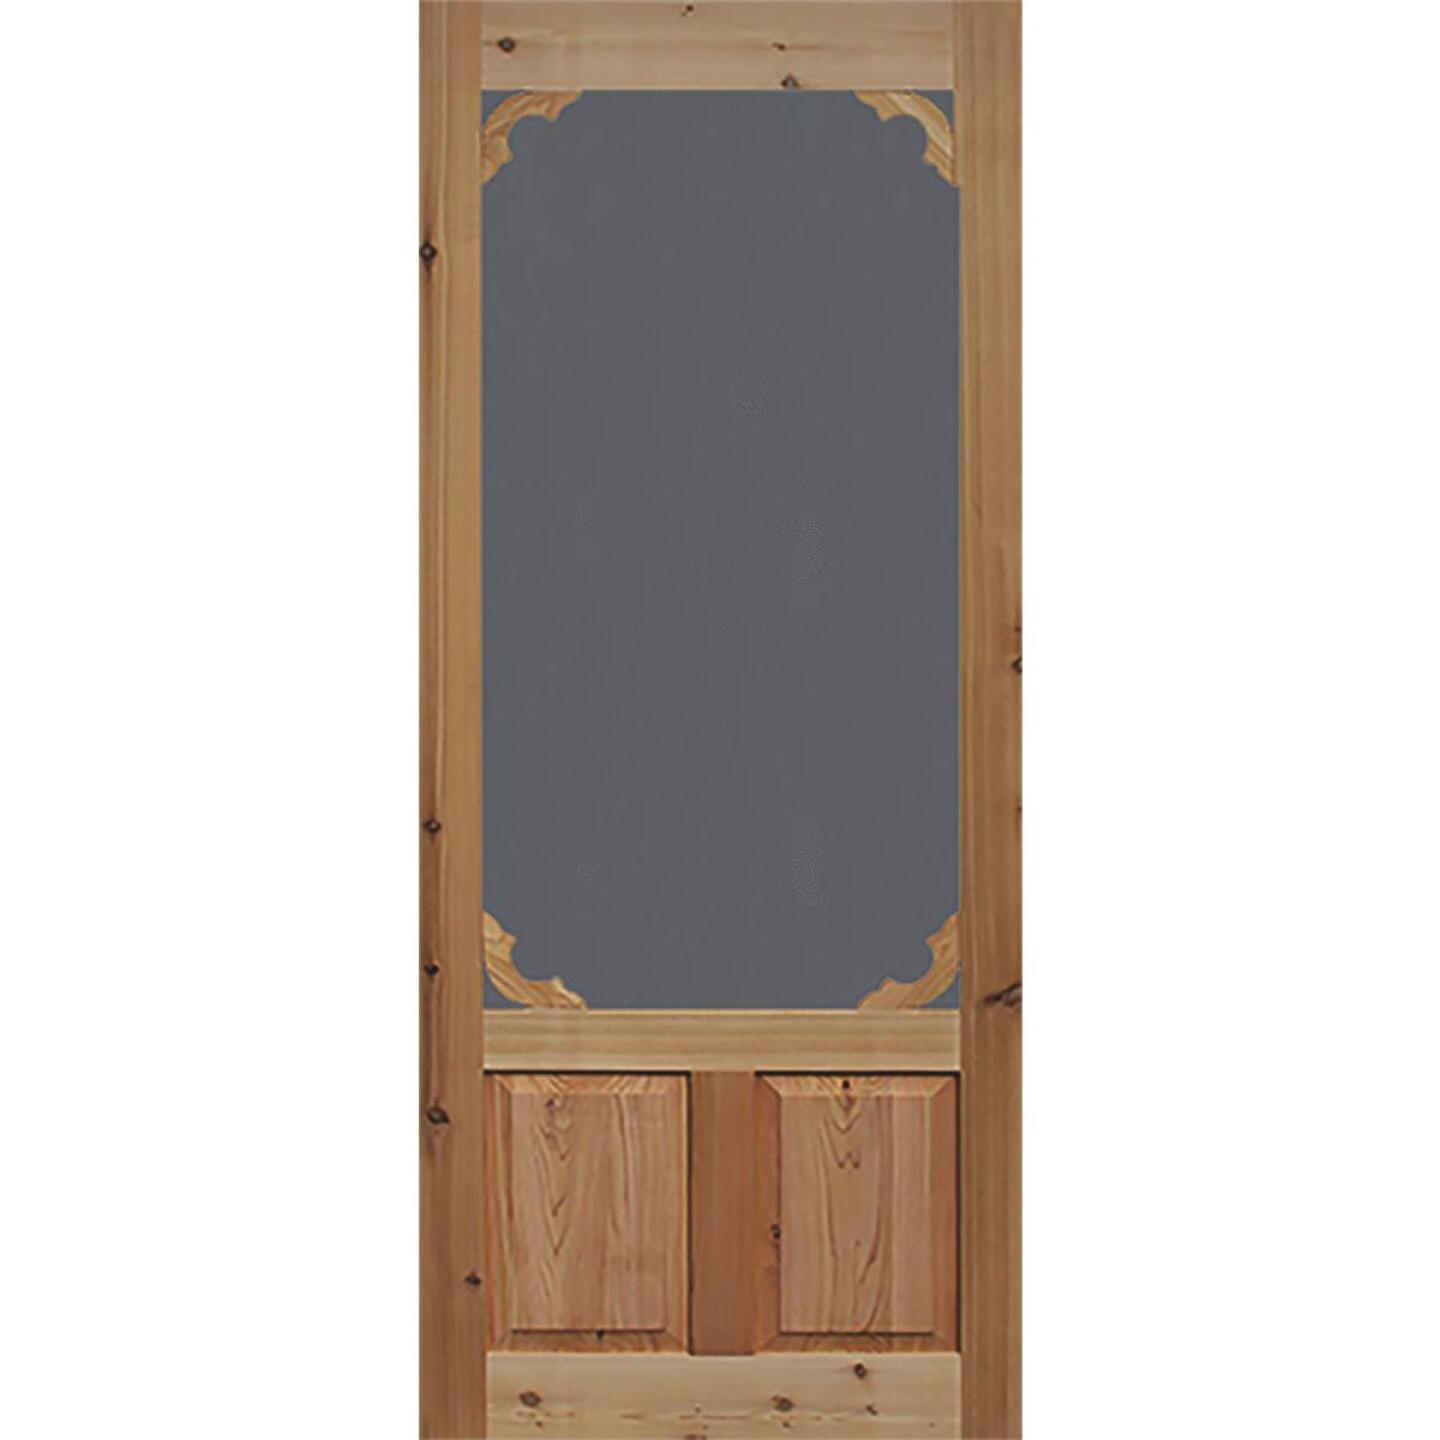 Snavely Kimberly Bay 36 In. W. x 80 In. H. x 1-3/8 In. Thick Natural Cedar Wood Woodland Screen Door Image 1